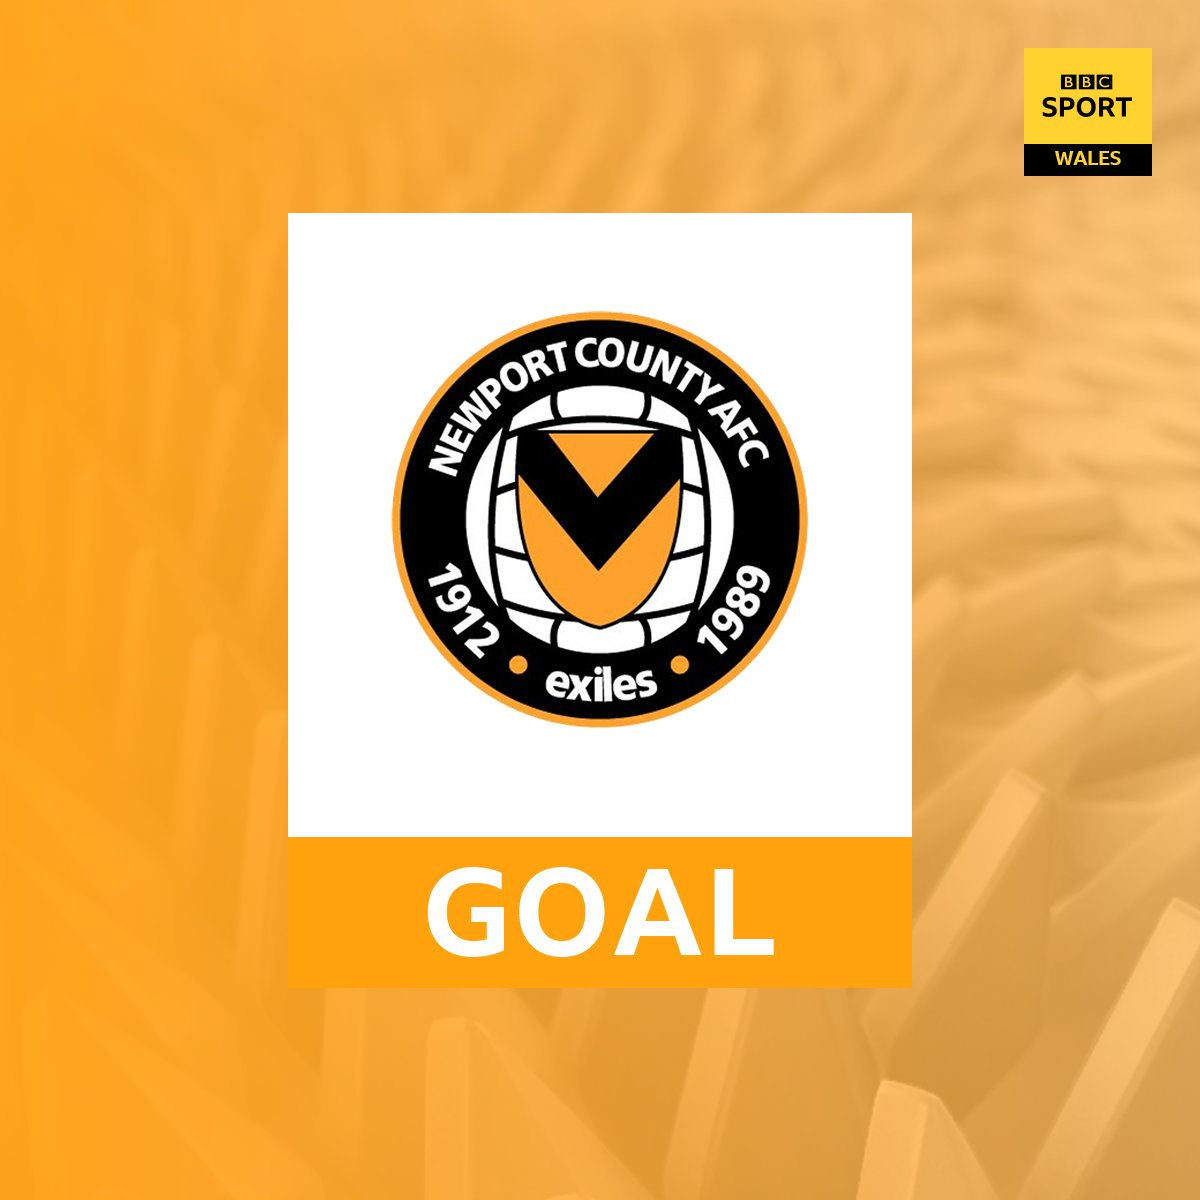 GOAL! Newport County 2-0 Accrington   ⚽ Frank Nouble doubles the Exiles lead against the League Two leaders on 85 minutes  📻 Updates on @BBCRadioWales FM/DAB in south east Wales.